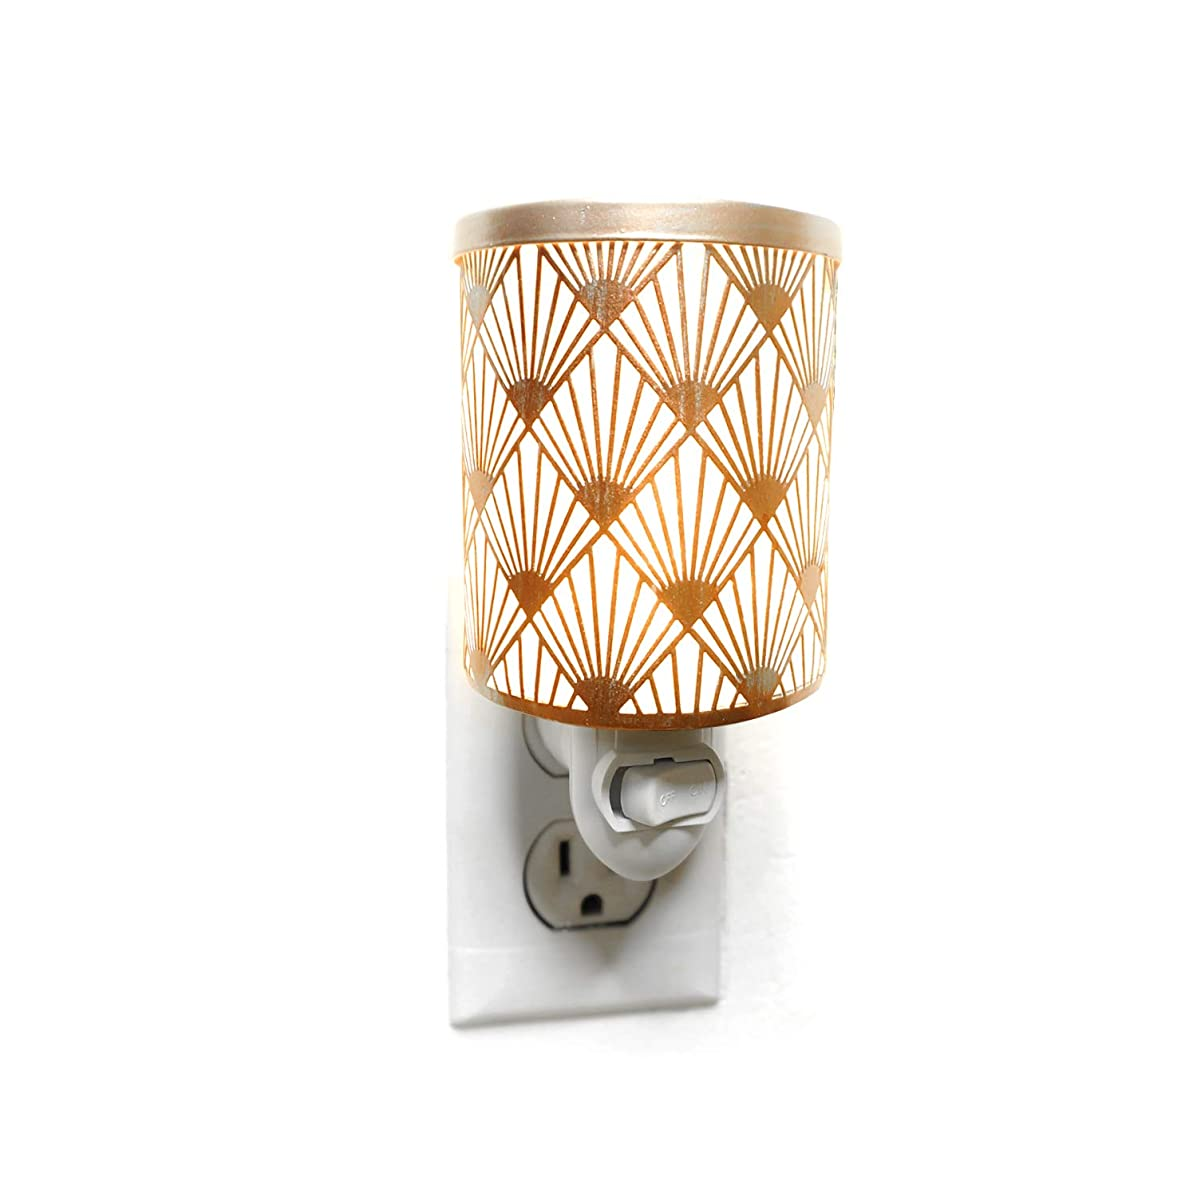 K-Cliffs Peacock Rose Gold Plug-in Fragrance Warmer Diffuser for Scented Wax Cubes & Essential Oils